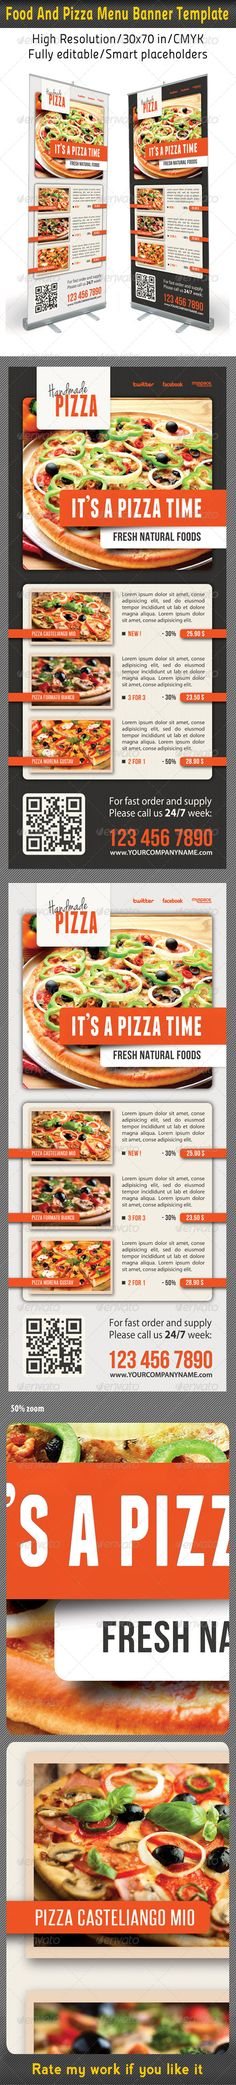 Food \ Restaurant Banner template, Banners and Template - sample pizza menu template